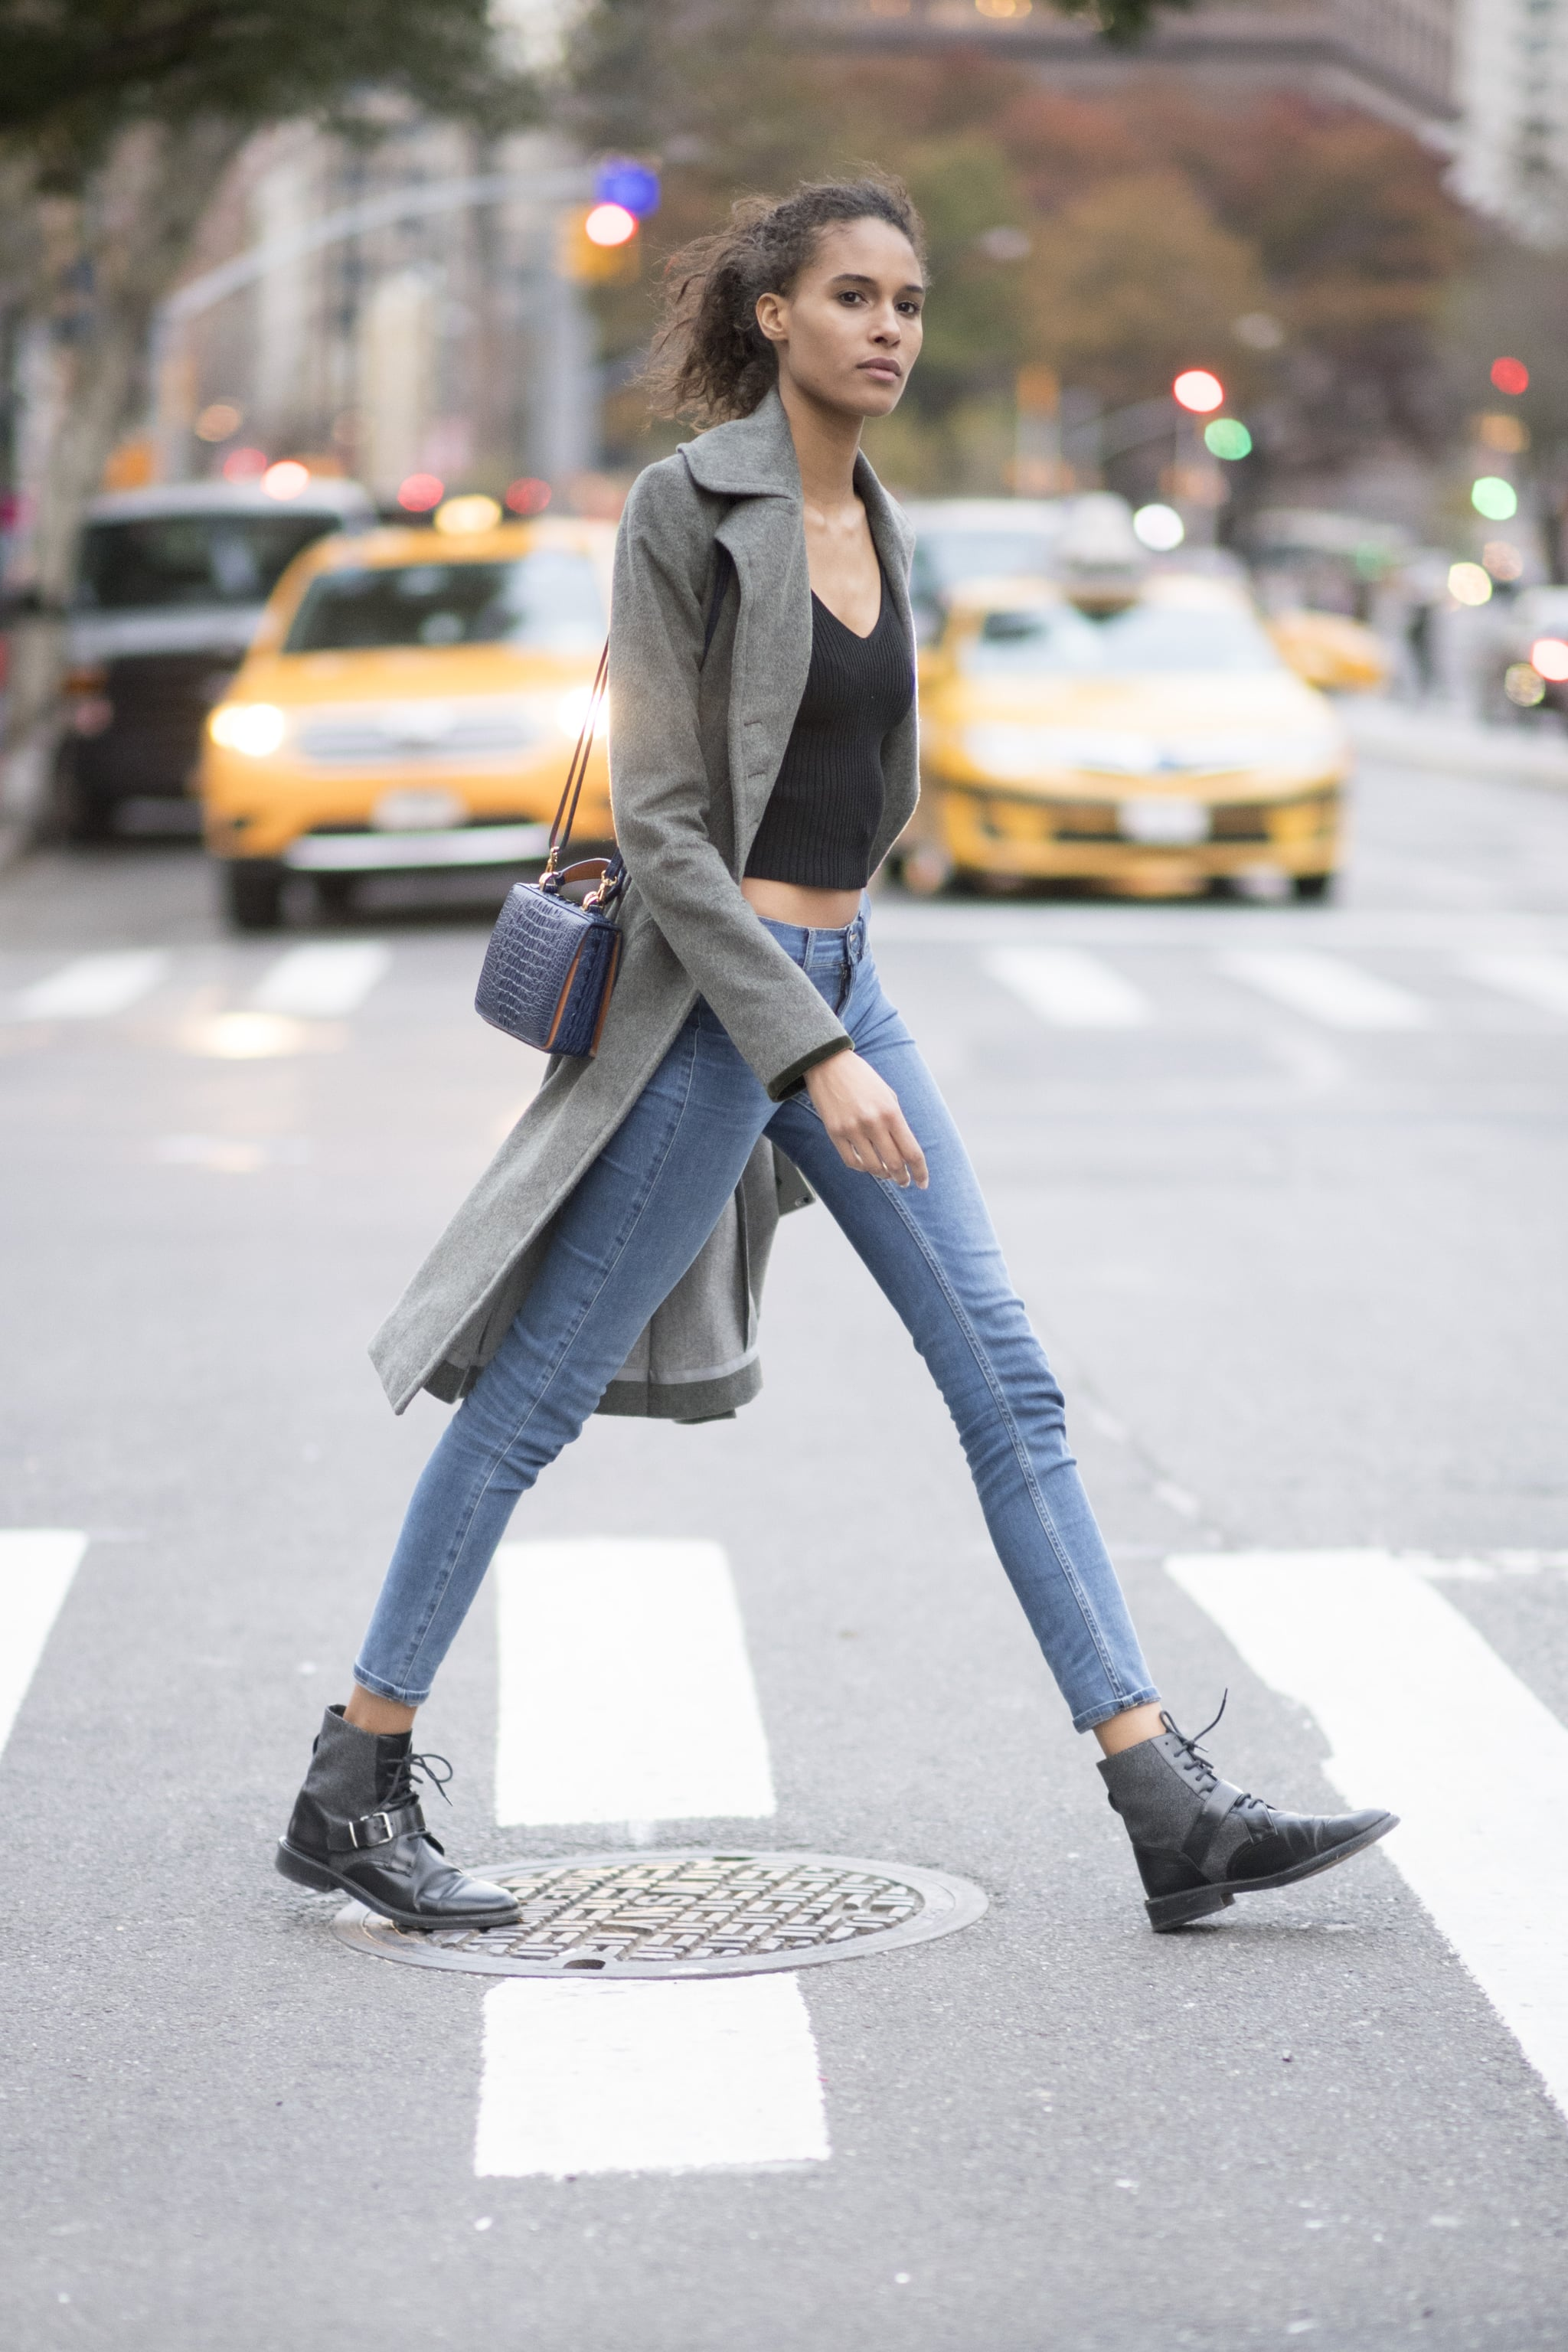 flat ankle boots with jeans - photo #20